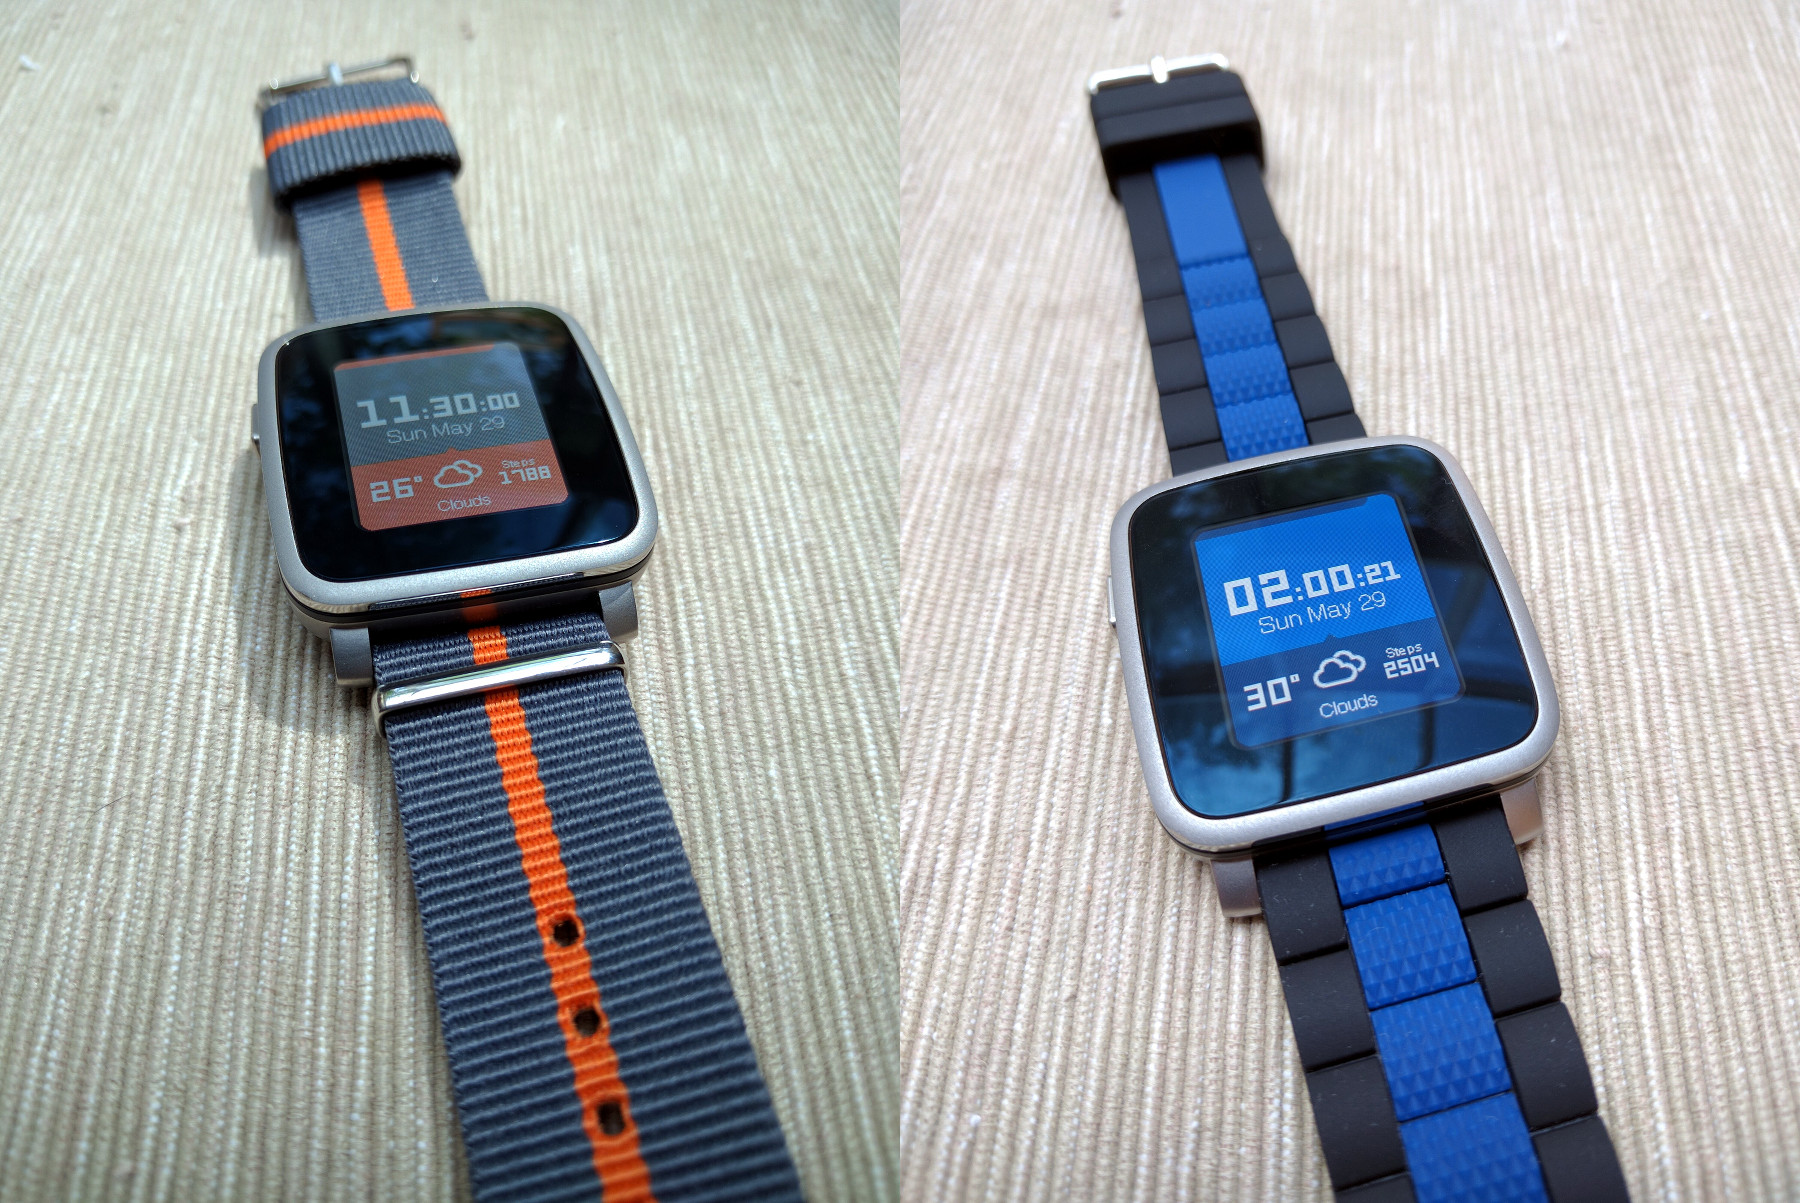 Customized Pebble Time Steel